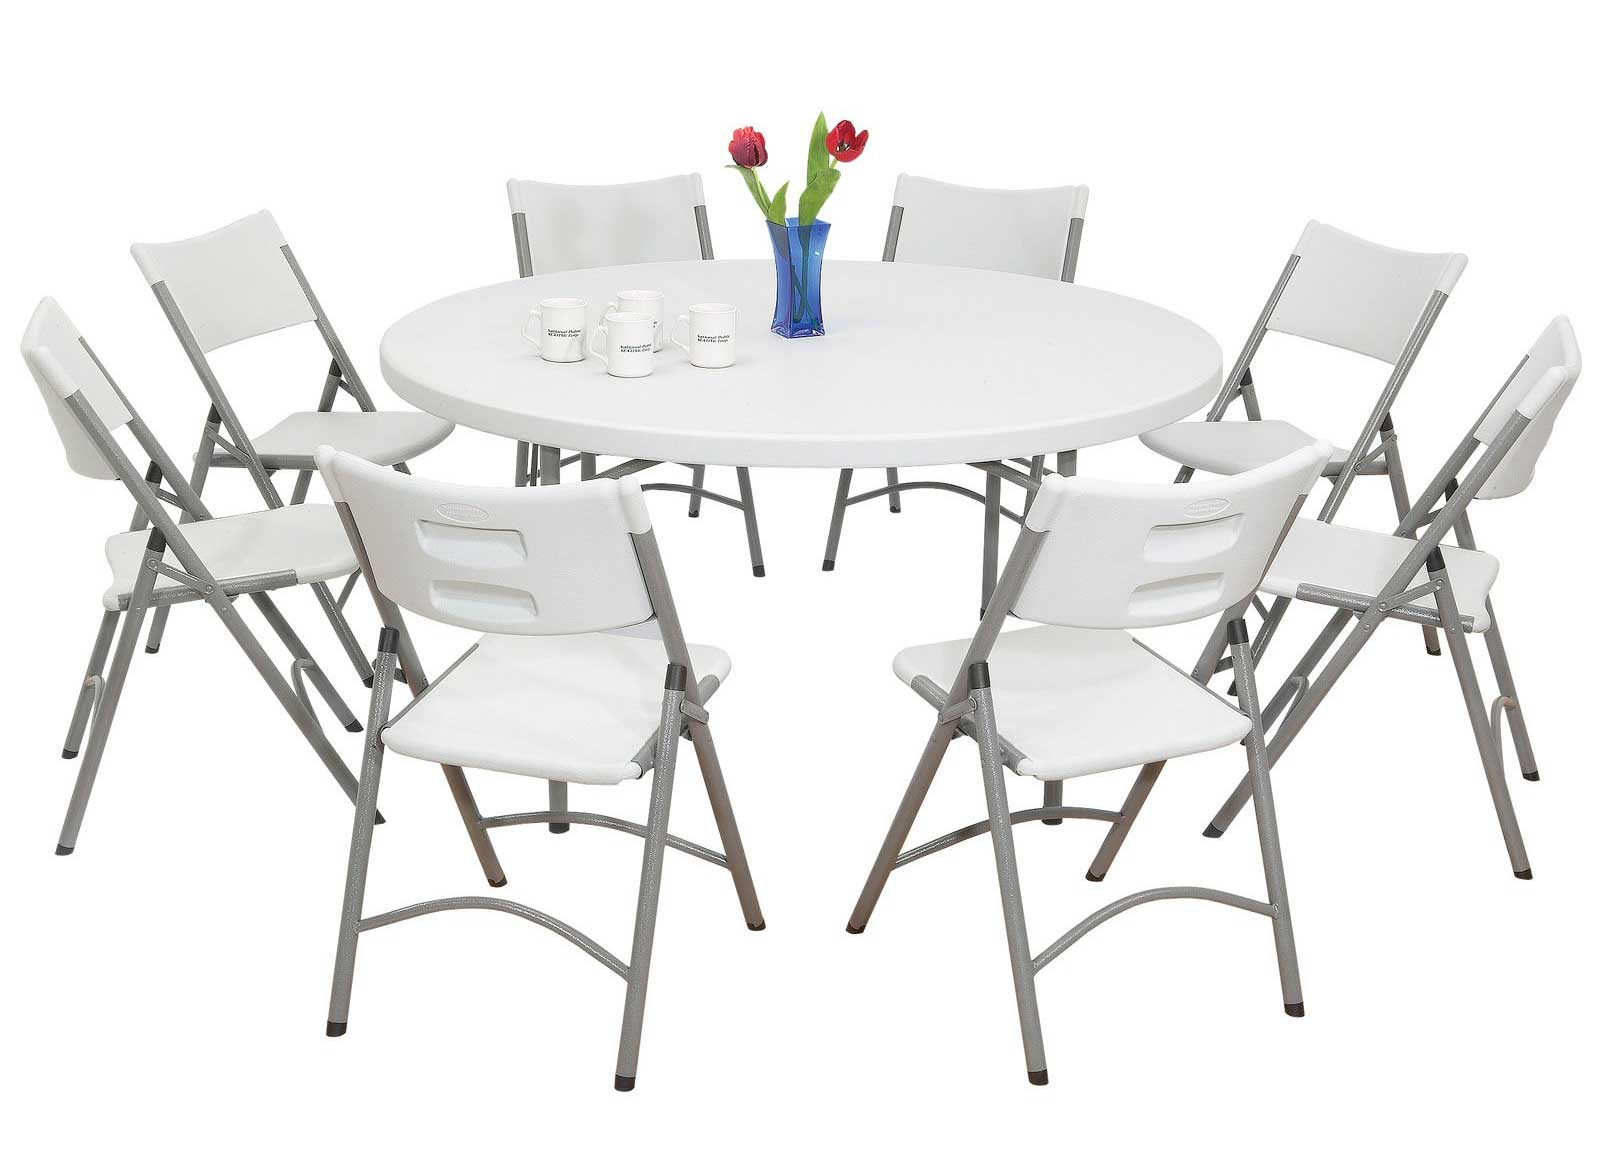 Brilliant Round Card Table and Chairs Set 1600 x 1176 · 87 kB · jpeg